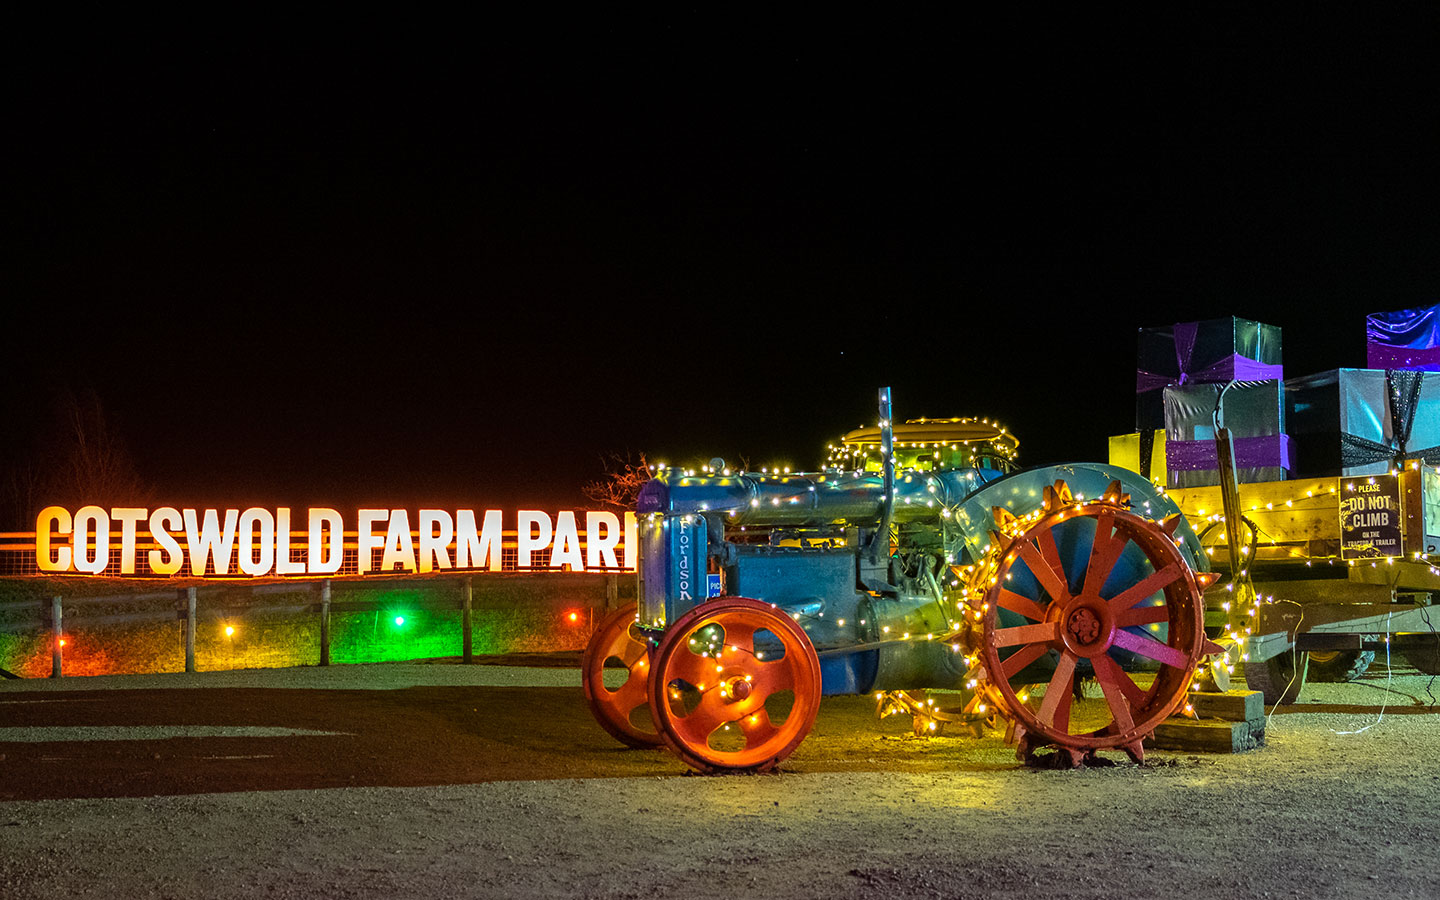 Cotswold Farm Park Enchanted Light Trail in the Cotswold